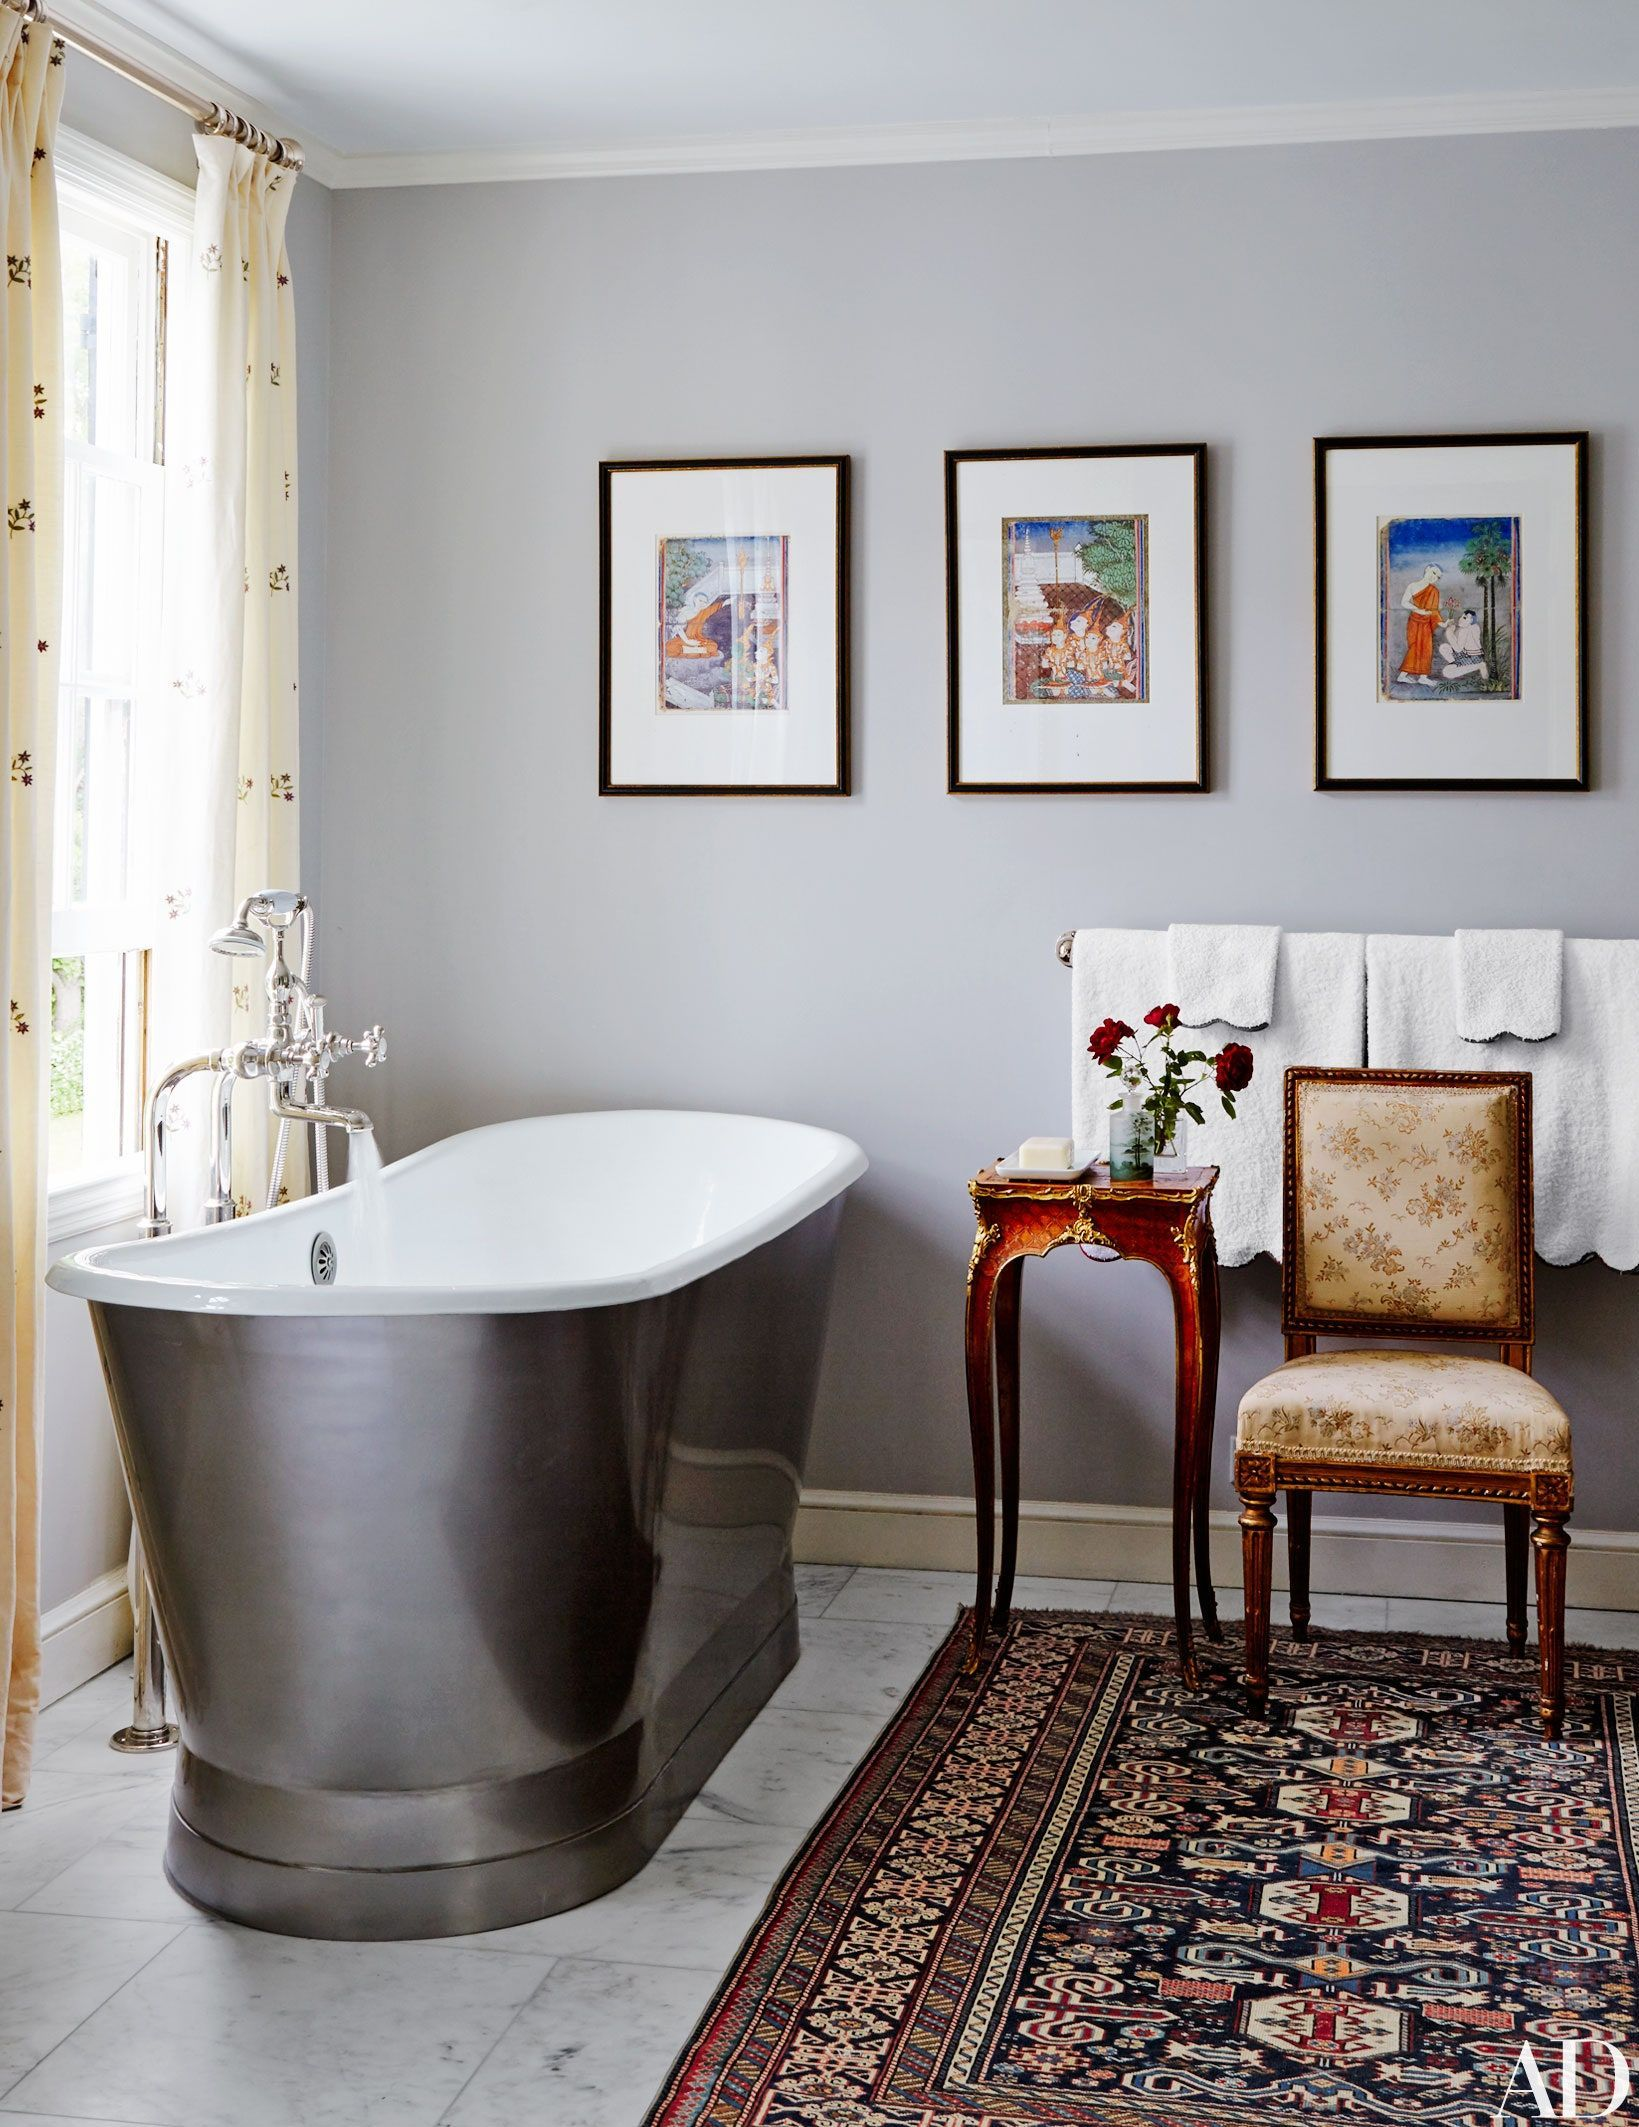 46 bathroom design ideas to inspire your next renovation on best bathroom renovation ideas get your dream bathroom id=29464